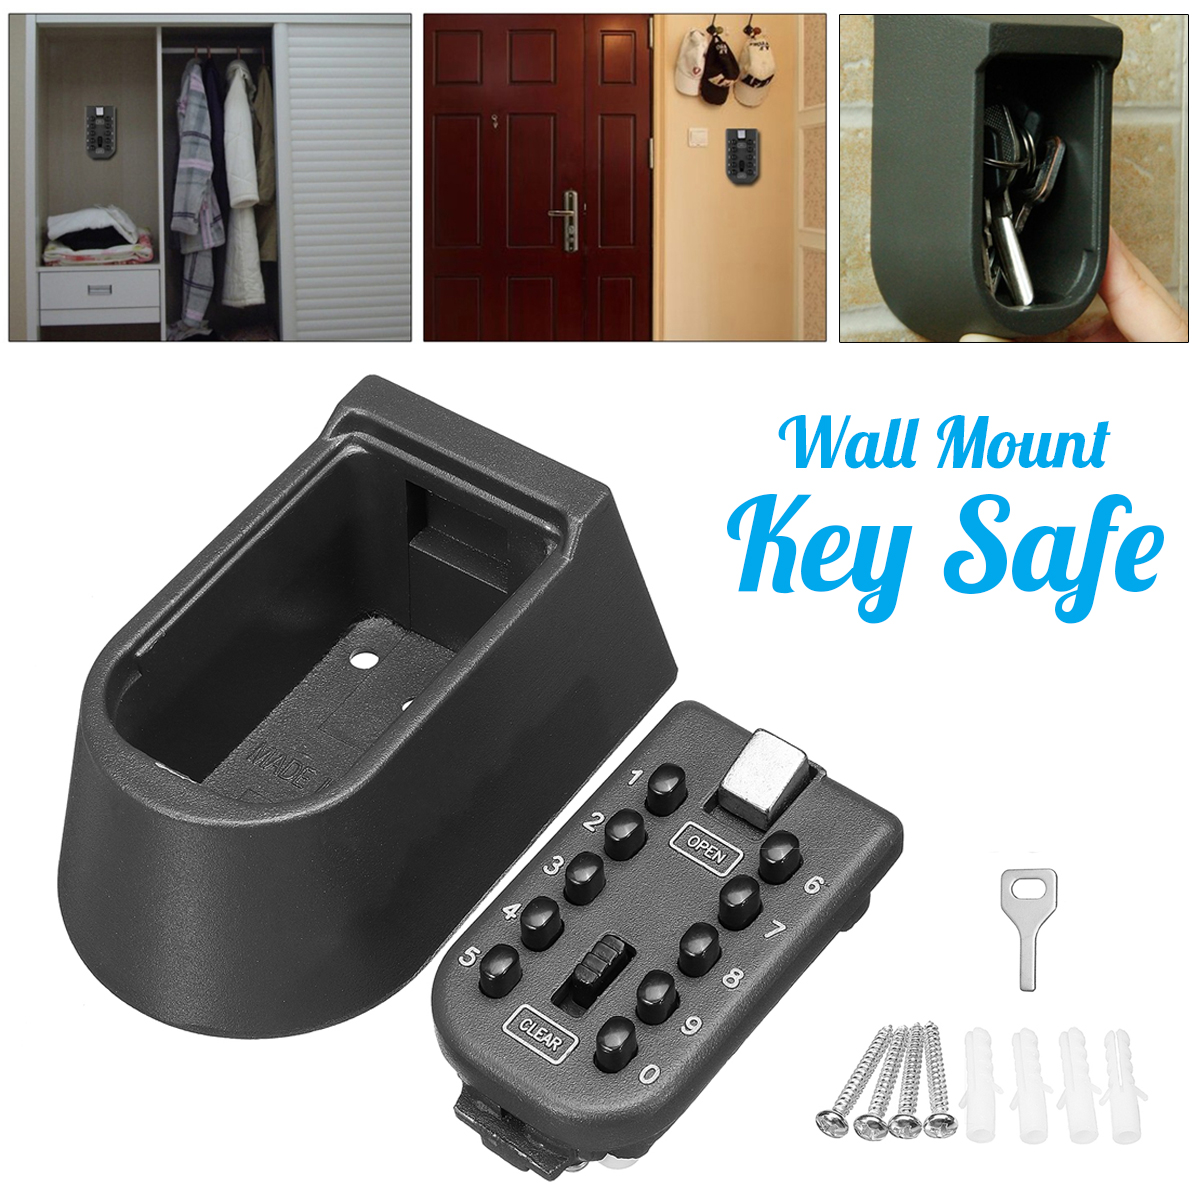 Lock Storage Box Outdoor Wall Mount Key Safe Combination